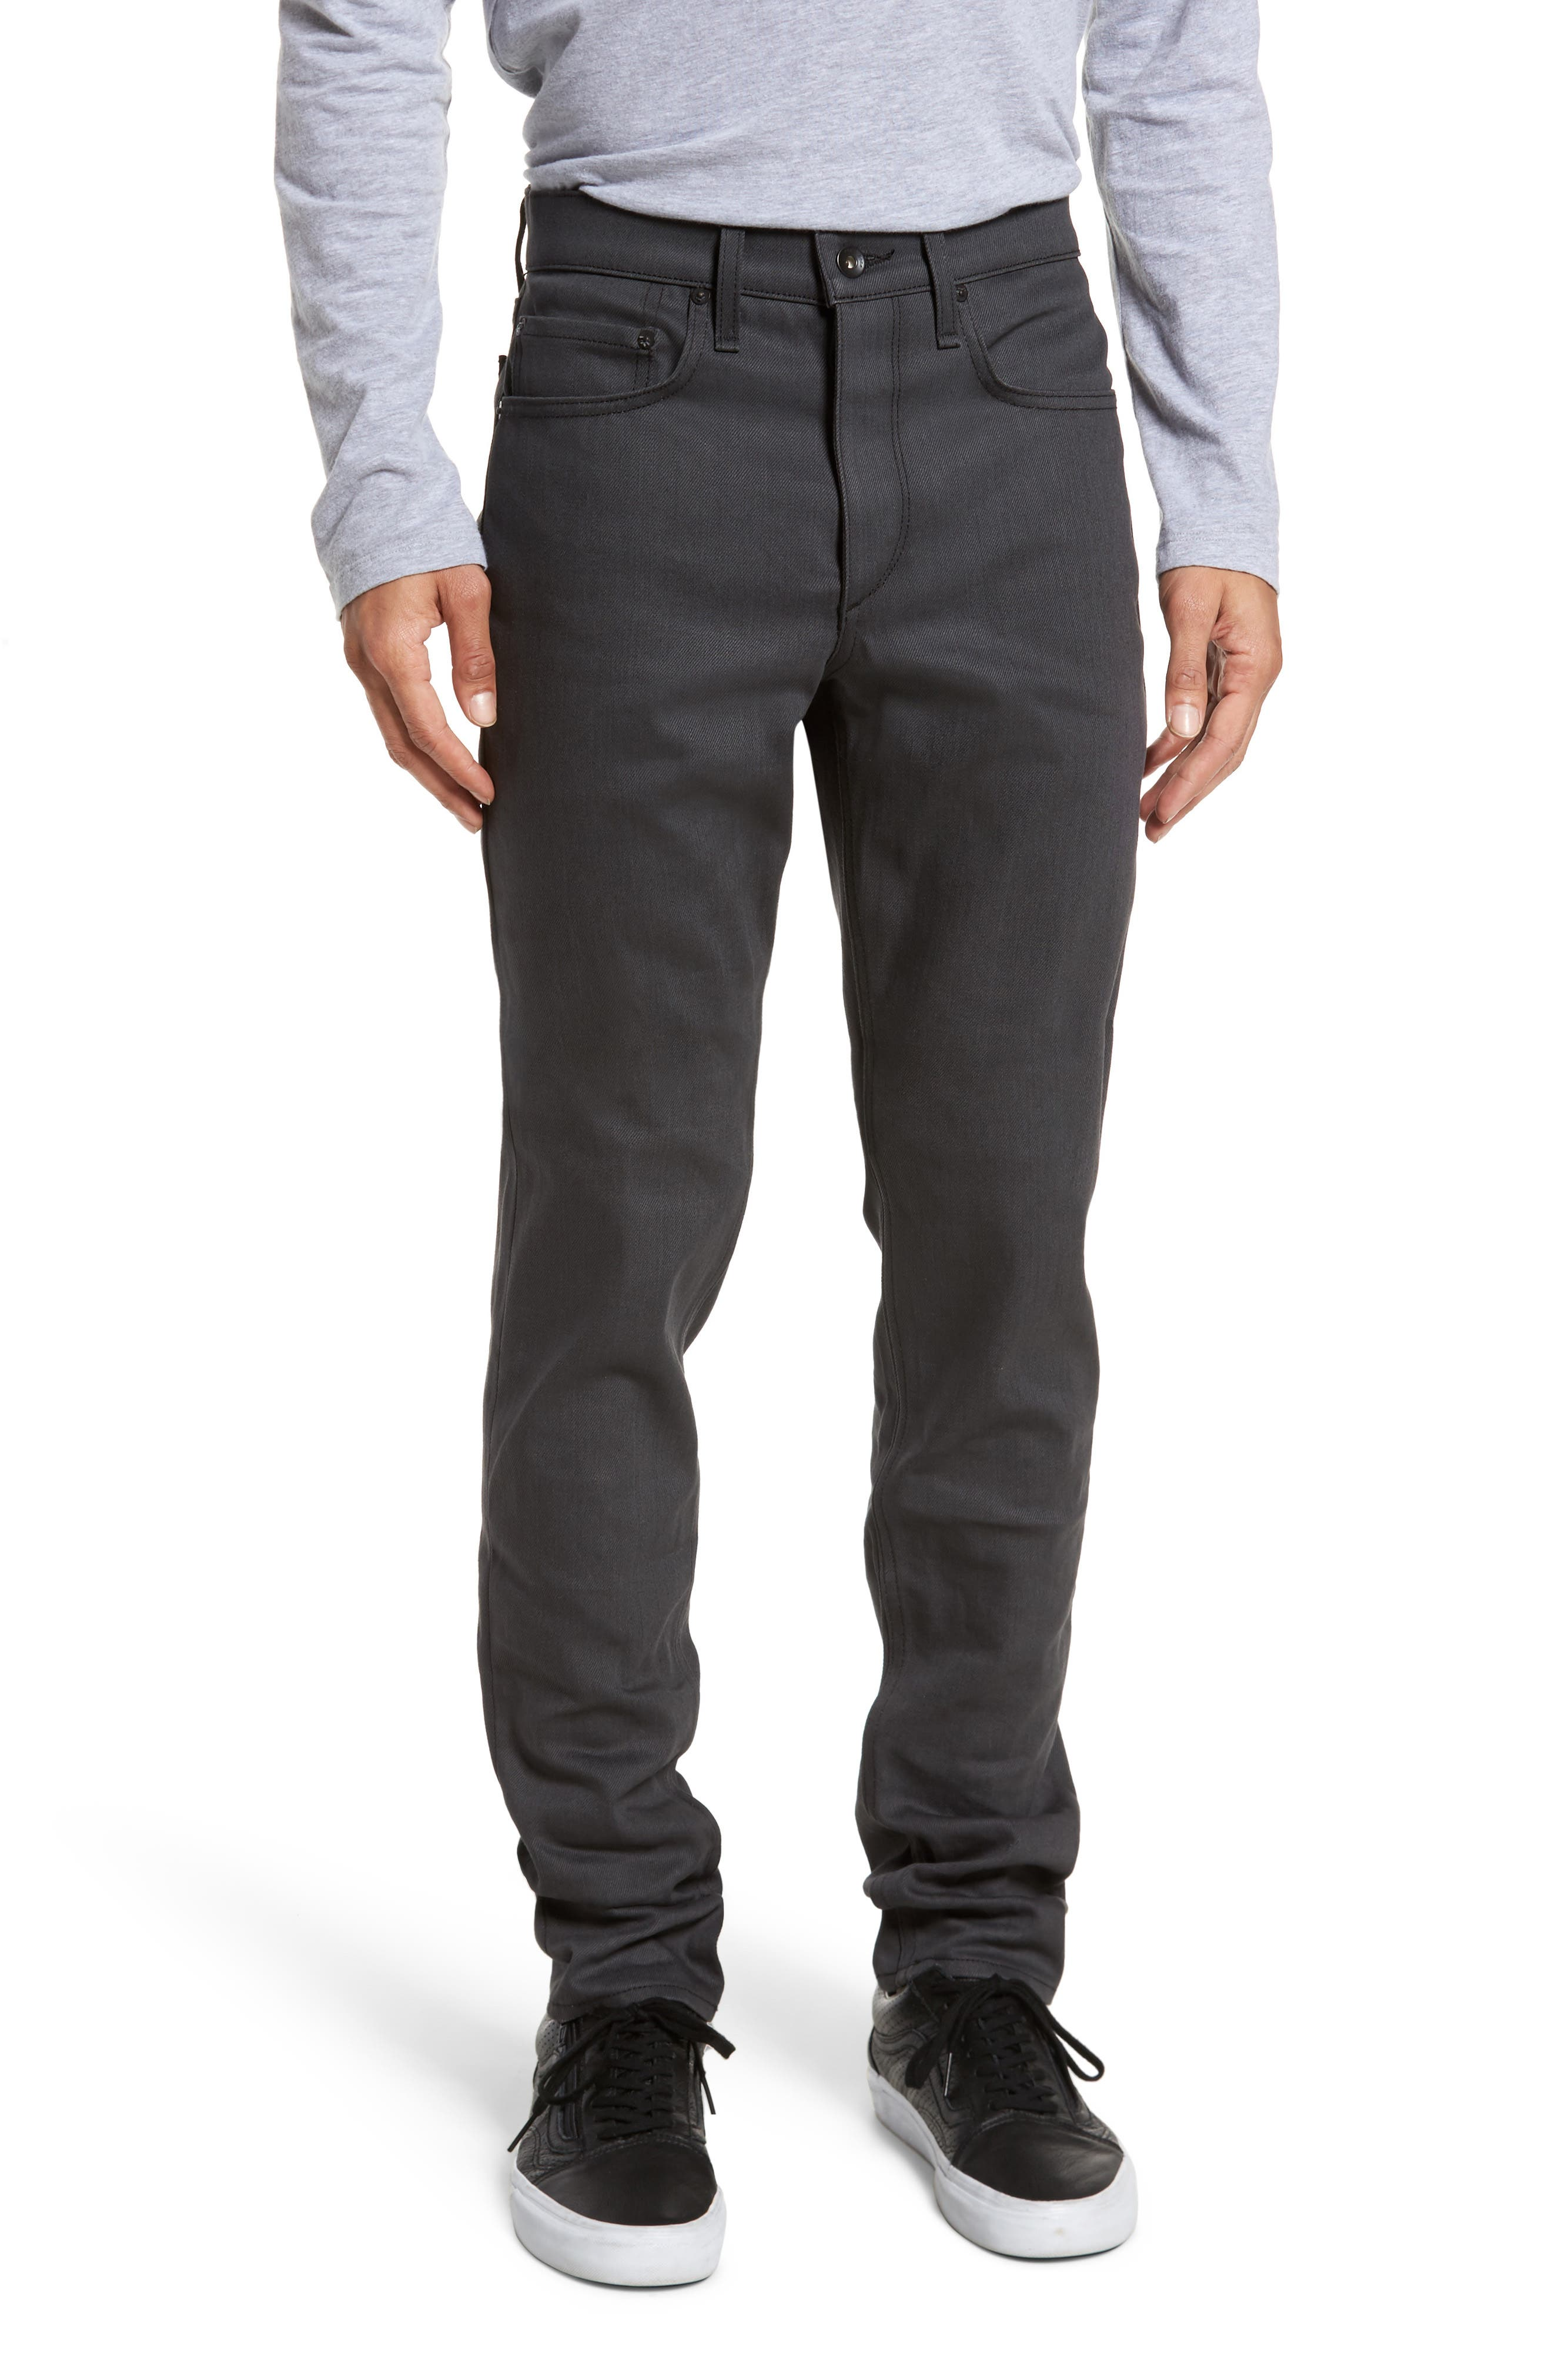 Fit 1 Skinny Fit Jeans,                         Main,                         color, 002